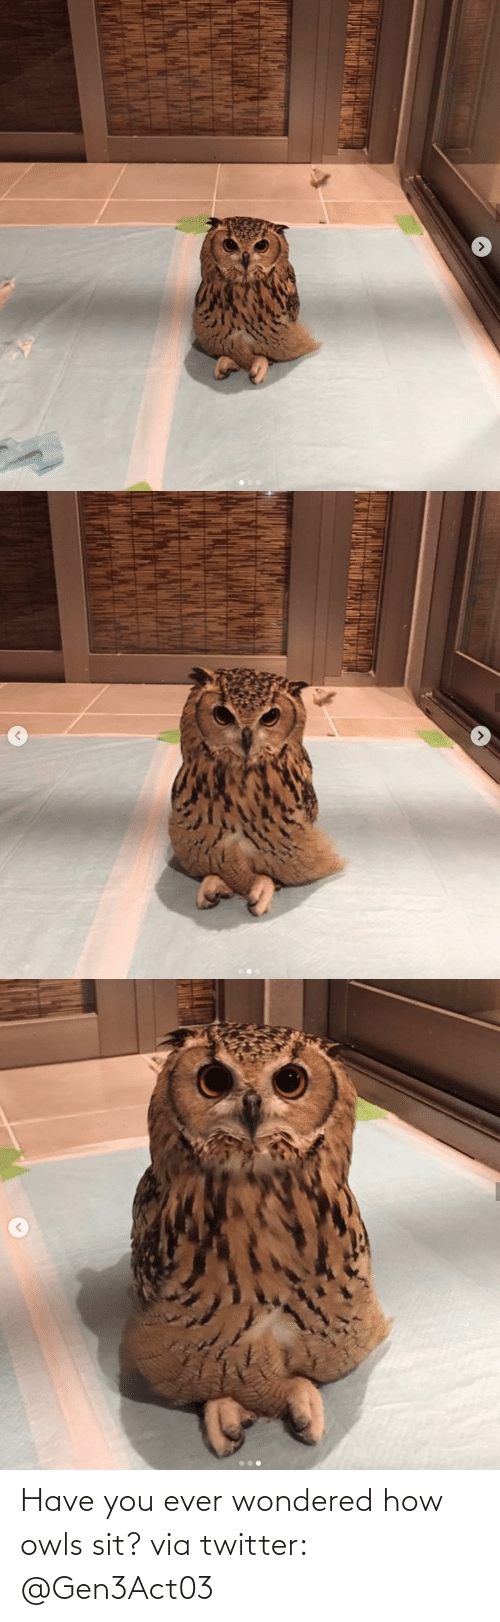 Sit: Have you ever wondered how owls sit?via twitter: @Gen3Act03